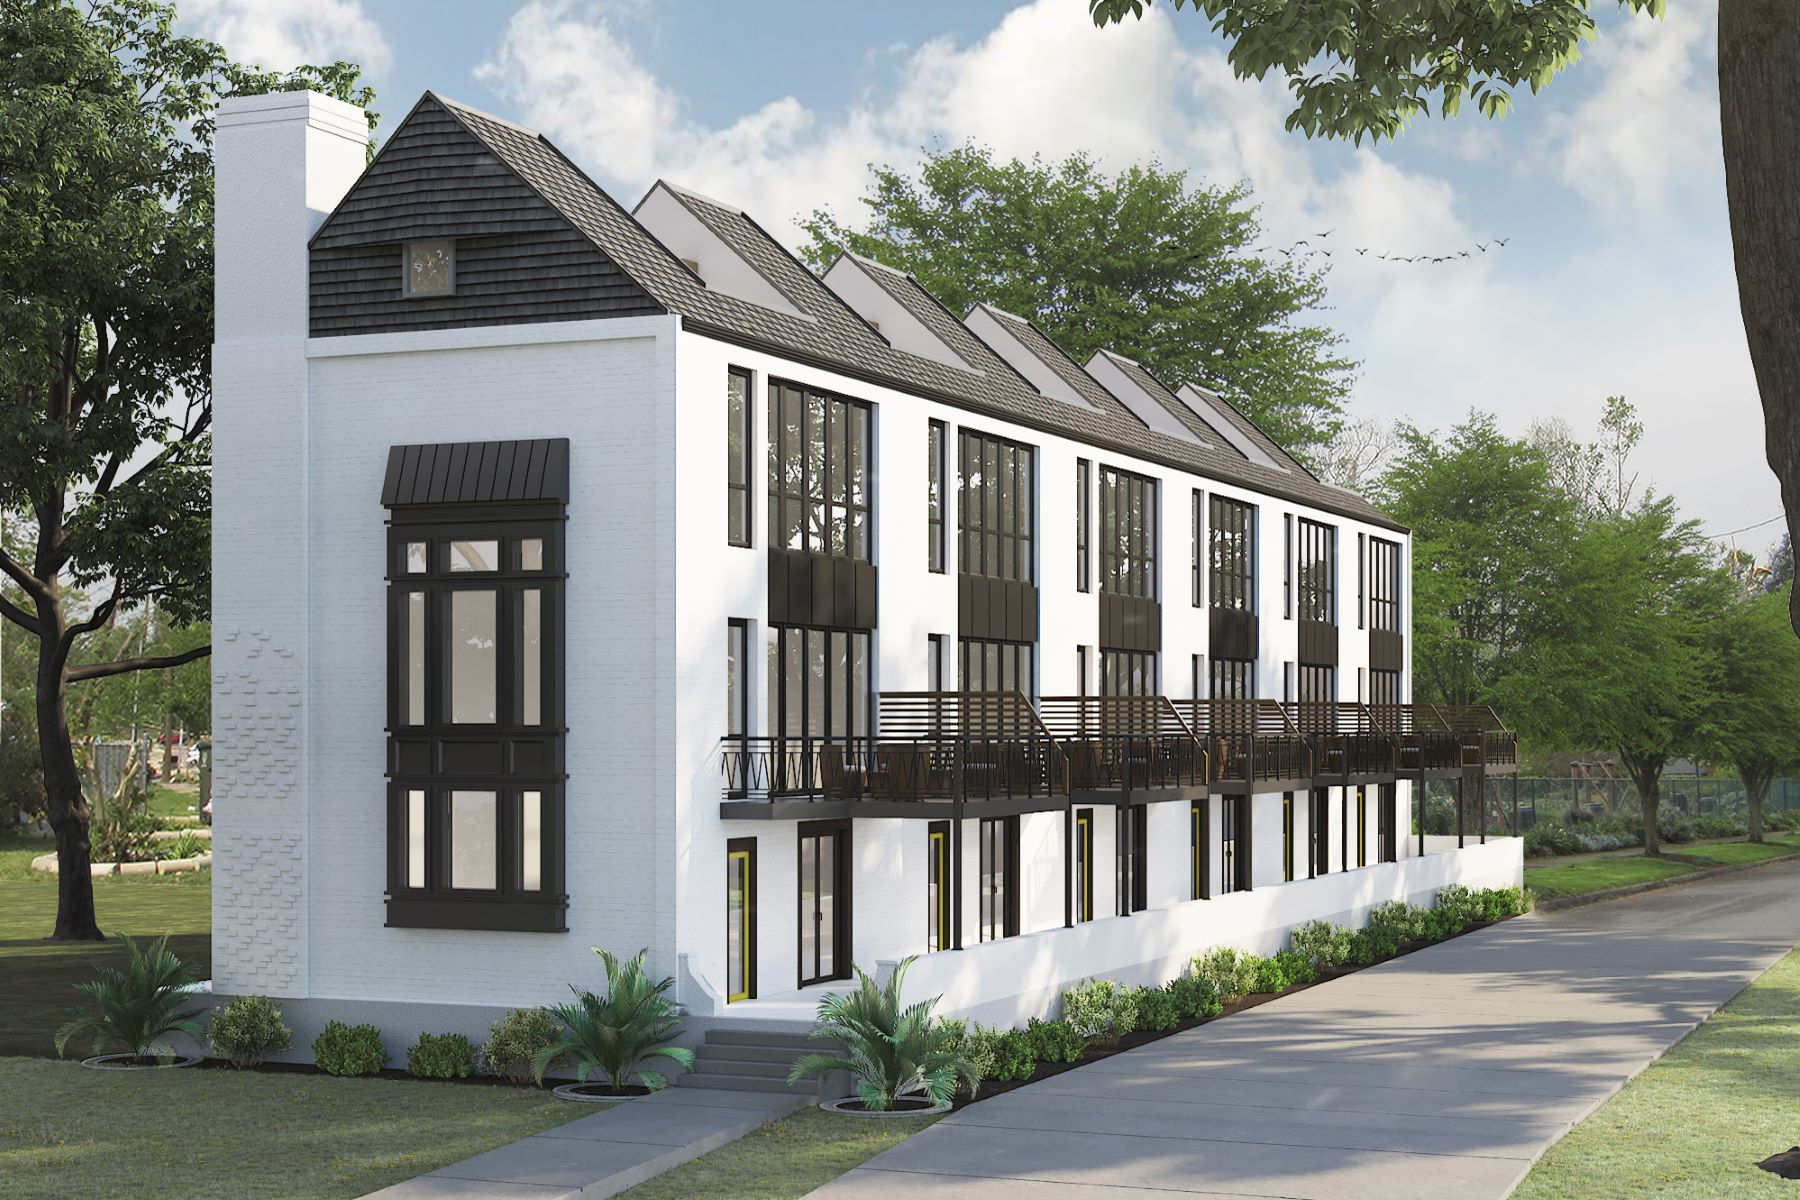 townhouses for Sale at West Village Townhomes - 106 Charles 4201 West Pine Boulevard, 106 - Charles St. Louis, Missouri 63108 United States